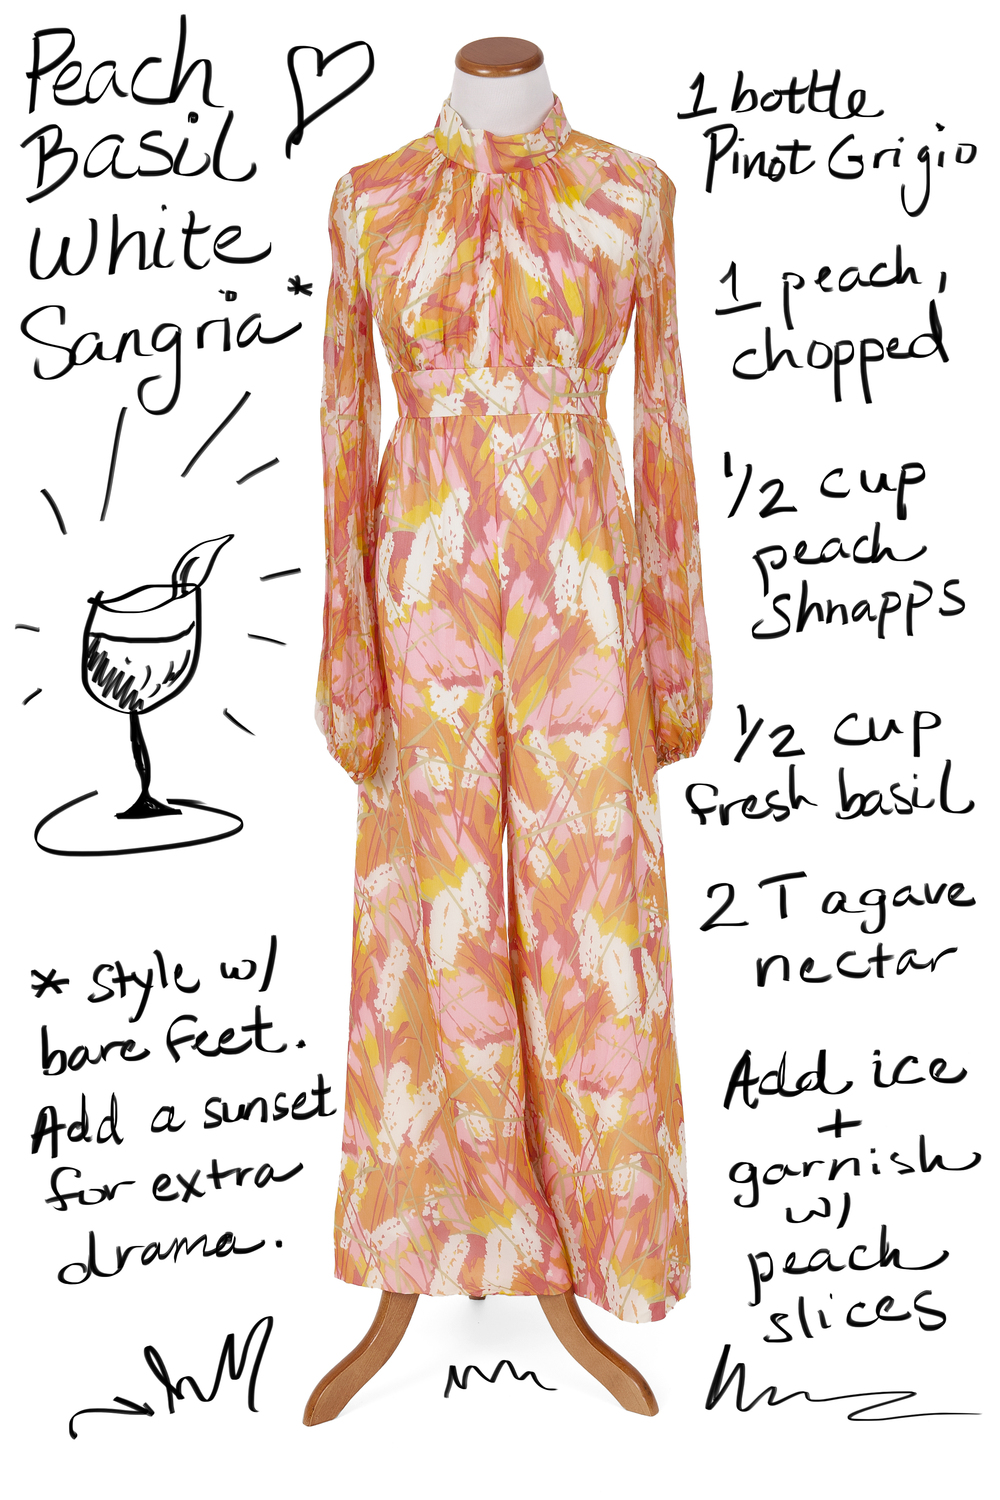 Vintage Jumpsuit with Peach Basil White Sangria